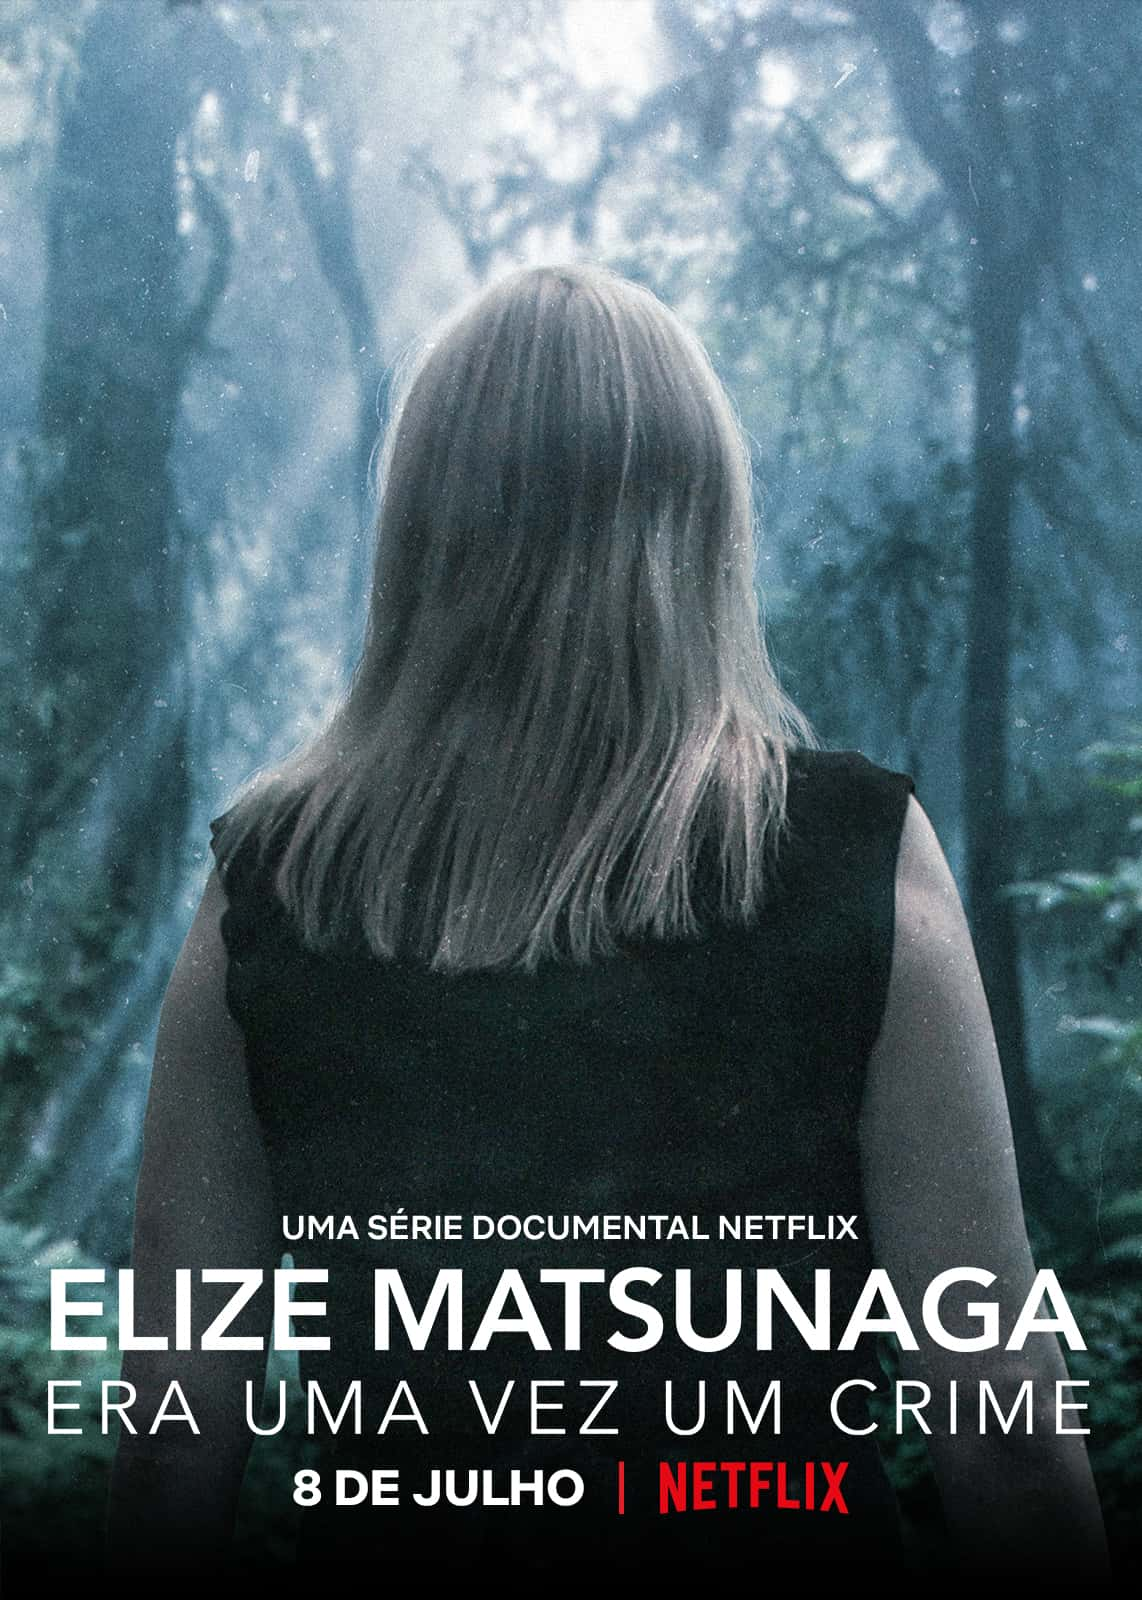 Netflix 'Elize Matsunaga: Once Upon a Crime': Air time, how to watch ...